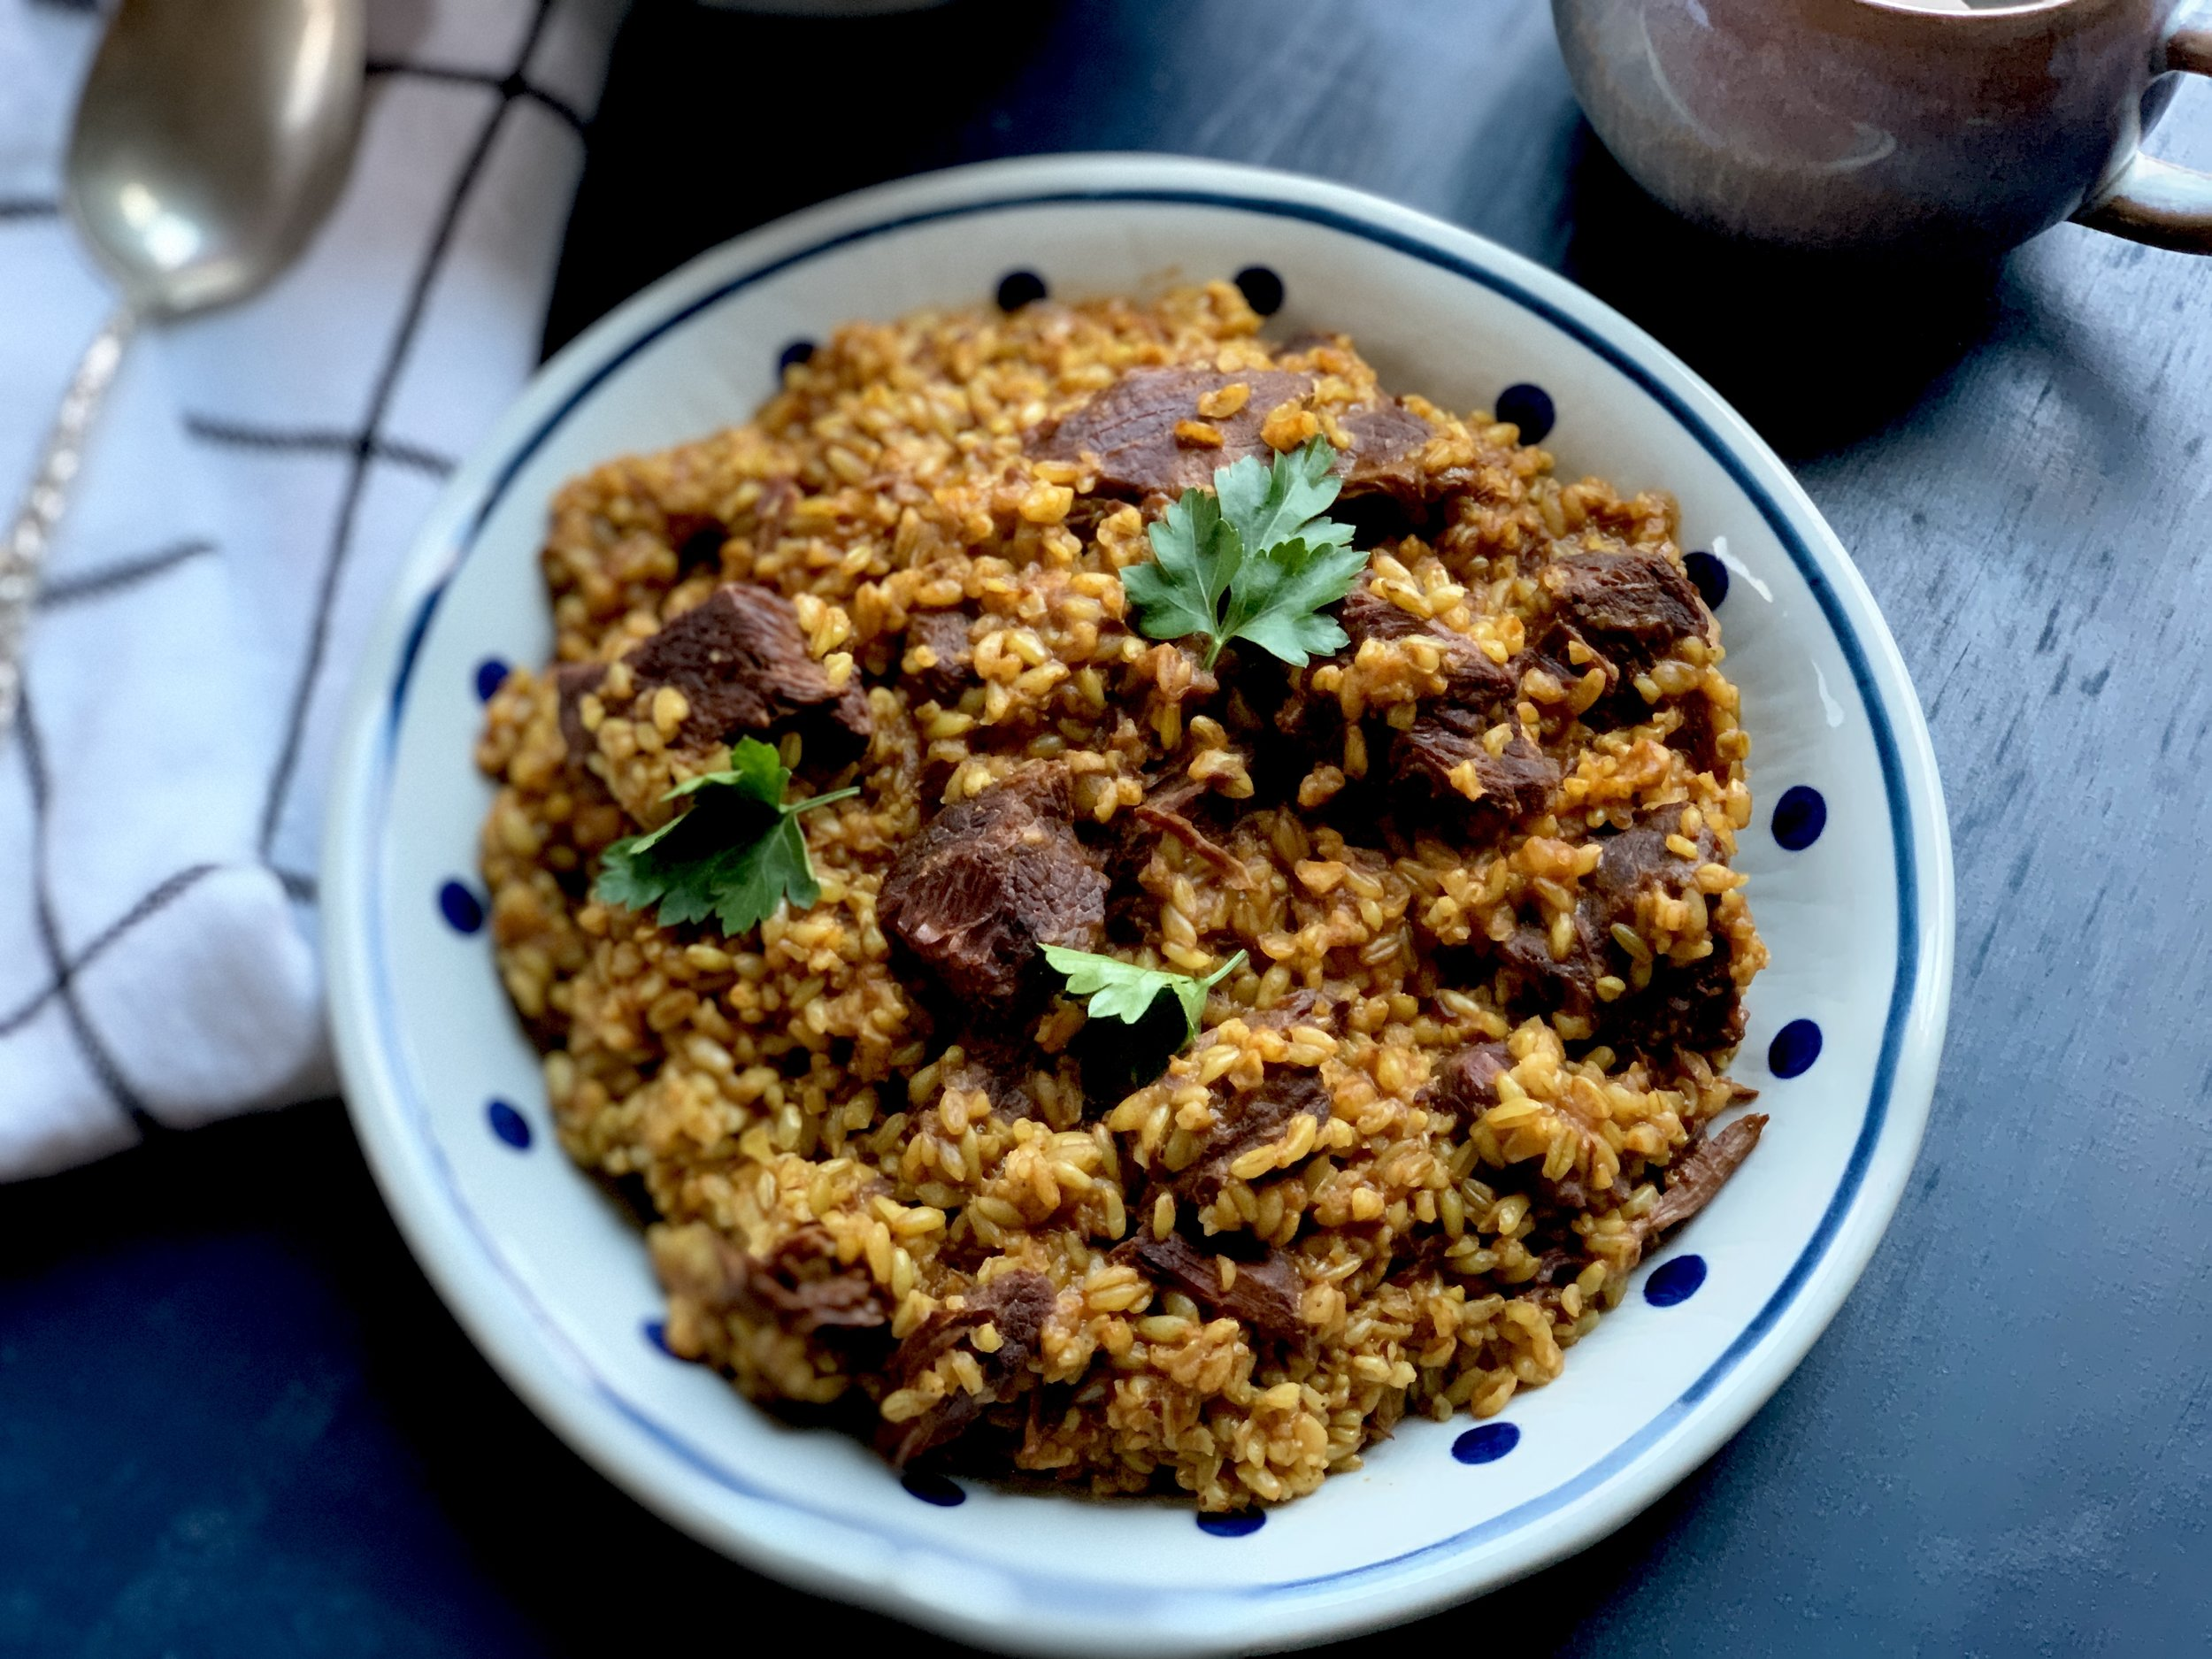 The Lore Beef stew and freekeh recipe